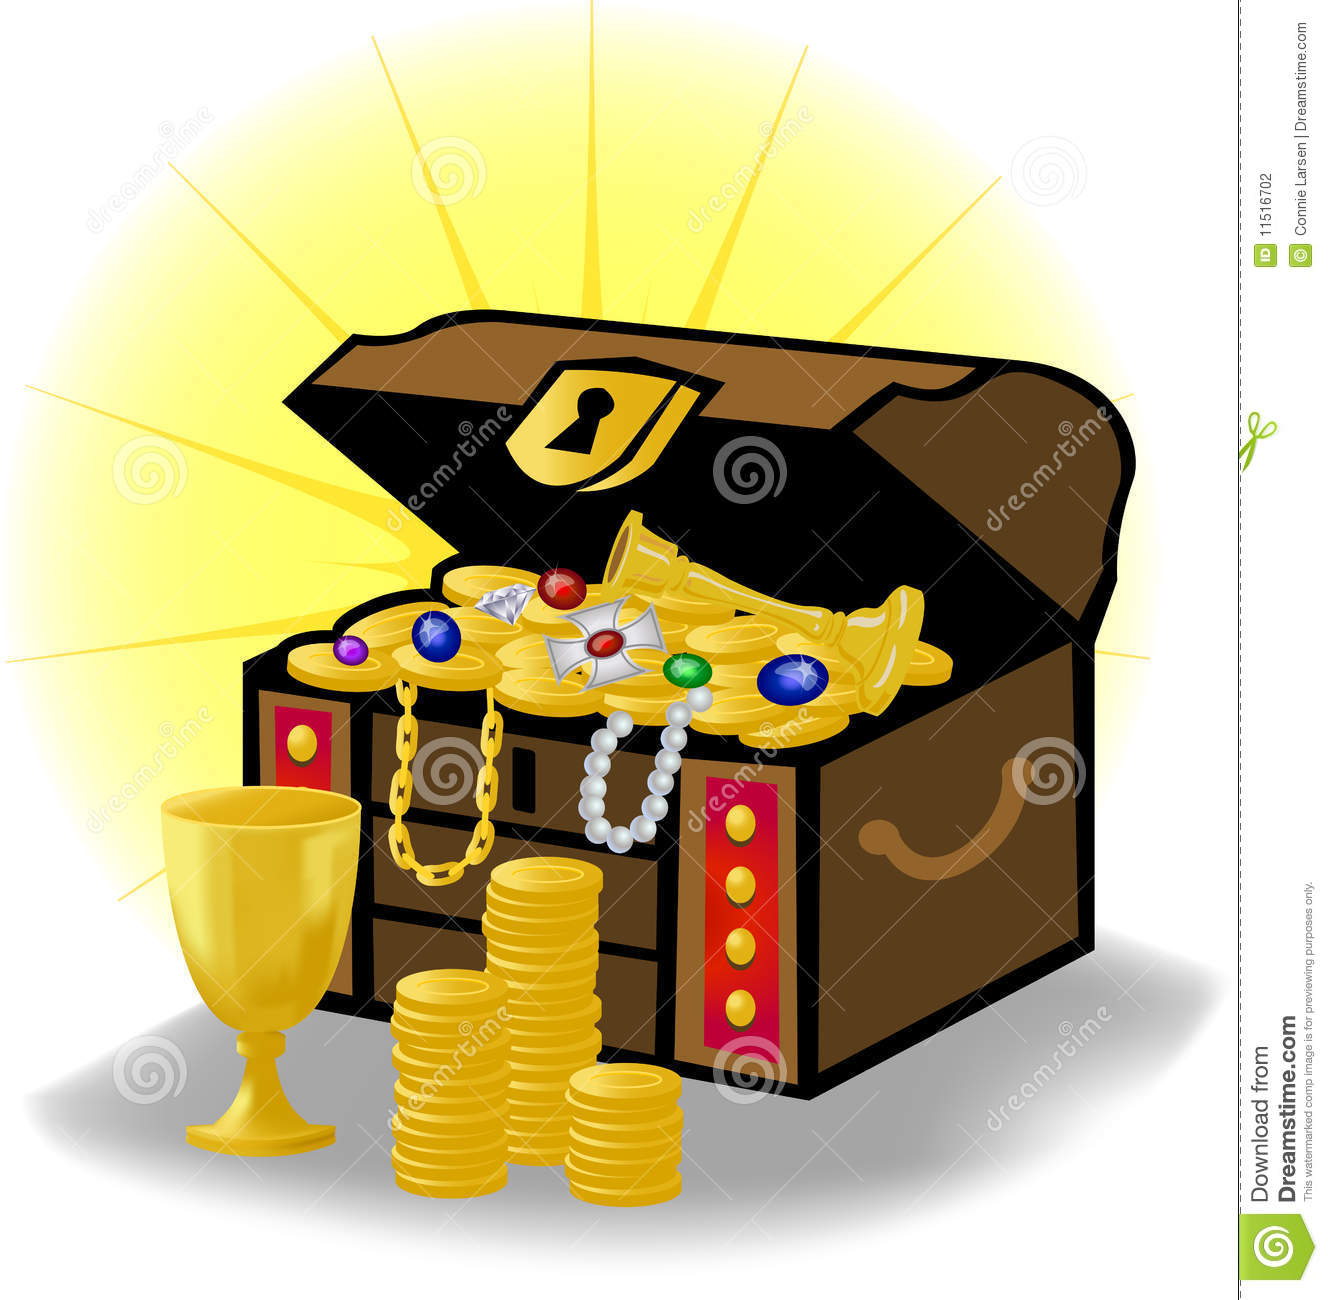 ... of a traditional treasure chest with gold coins, jewelry and gems